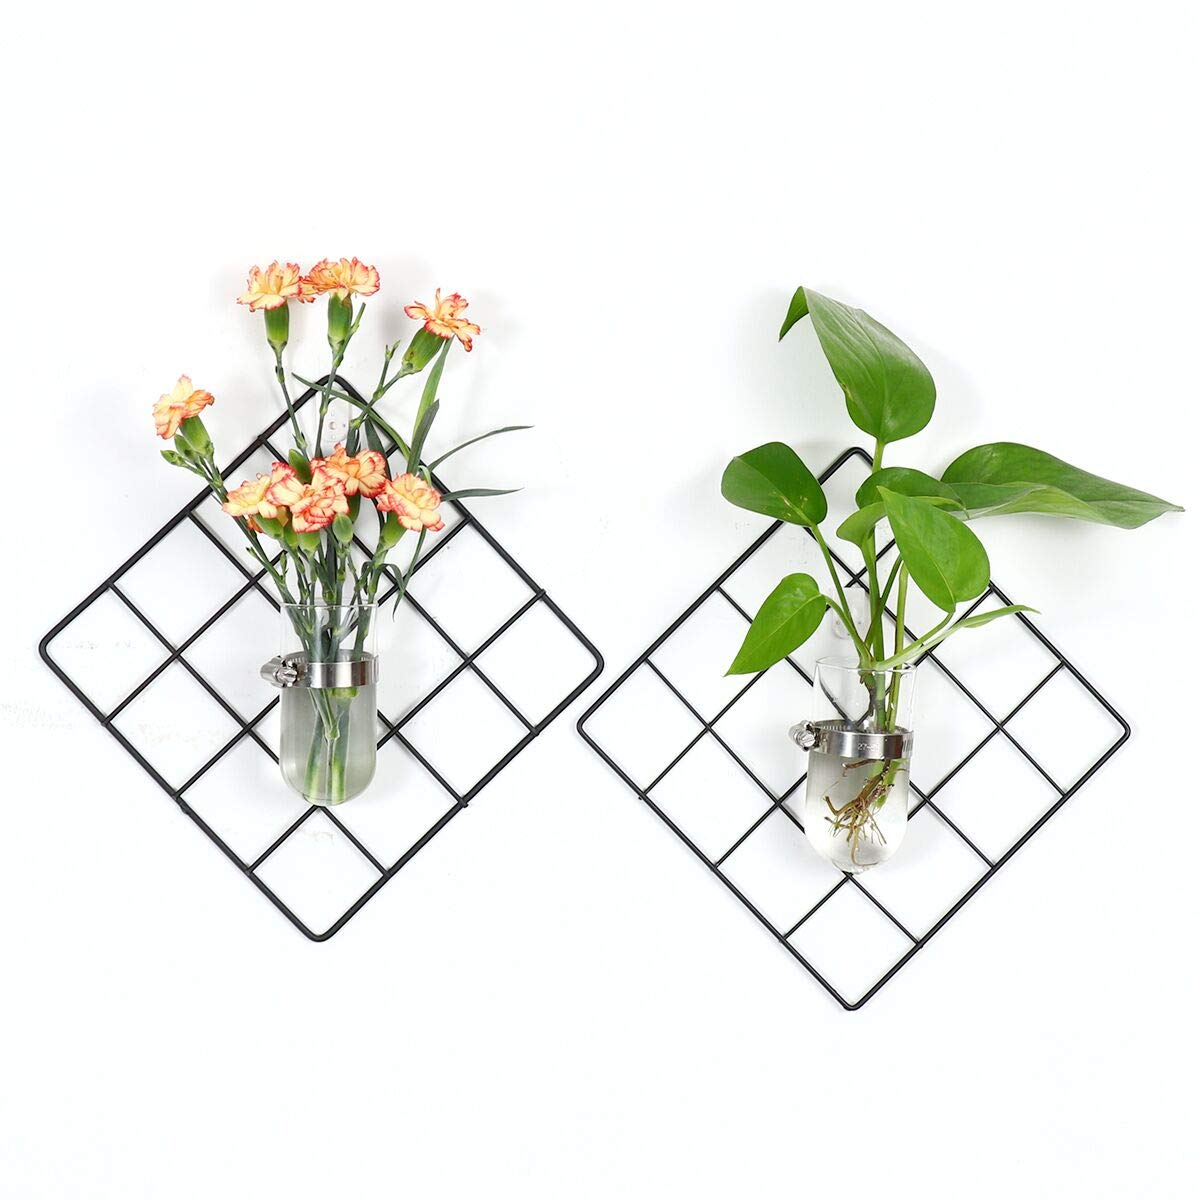 Kingbuy 4 Pack Painted Wire Wall Grid Panel with Wall Plant Terrariums Glass Hanging Planter Cylinder-Shaped Air Plants Holder Decorative Iron Wall Hanging Art Disply Photowall 7.6 X 7.6